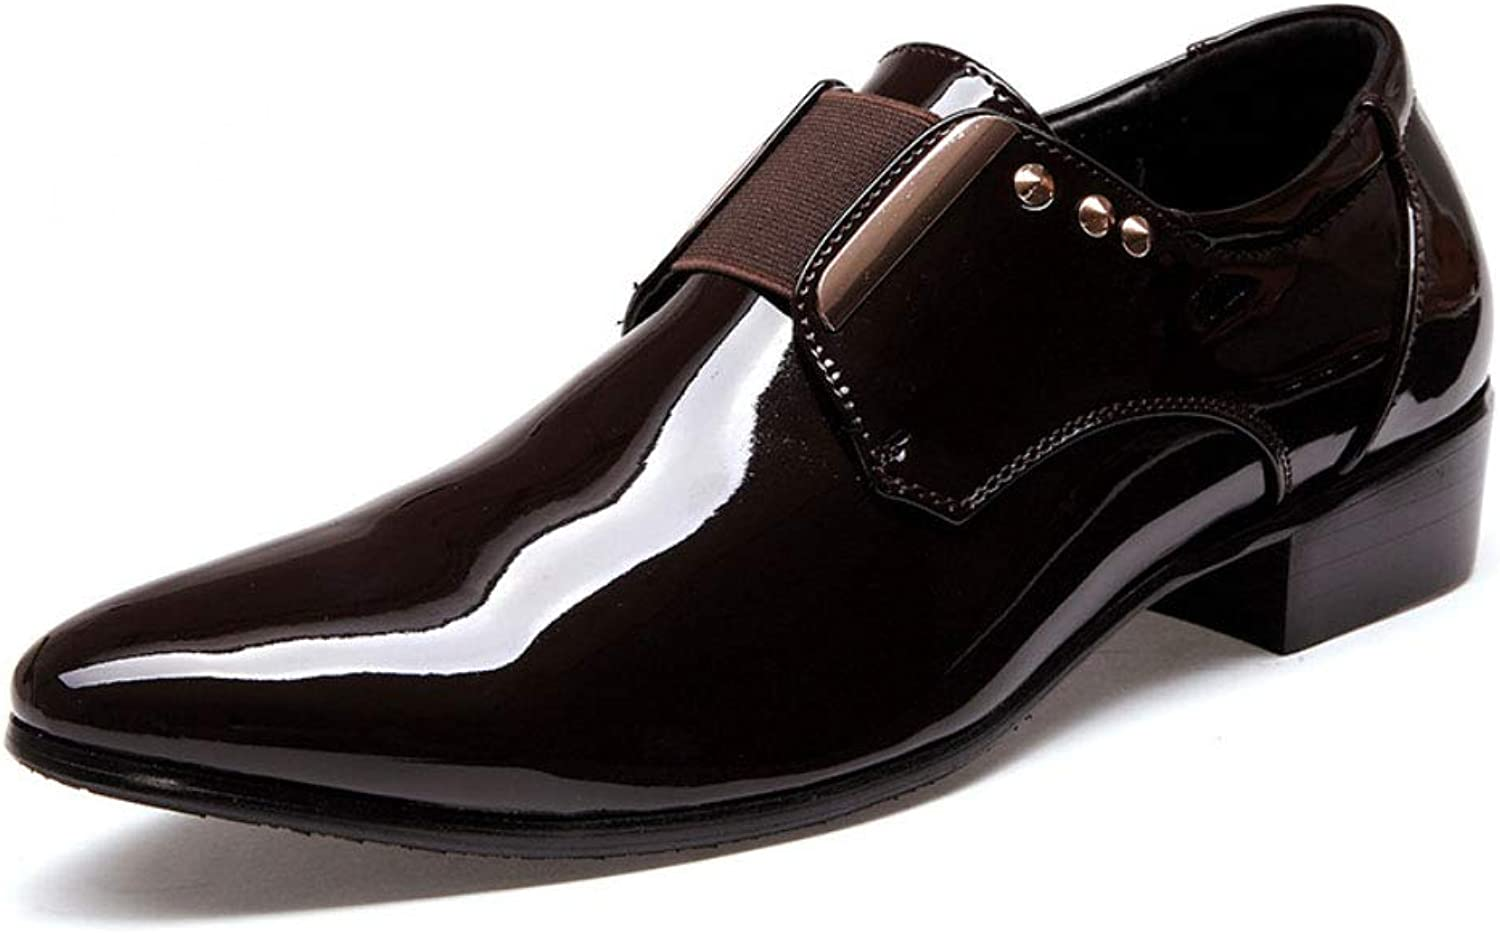 Leather shoes, Glossy Noodles, Pointed shoes, Fashion, Casual Men's shoes